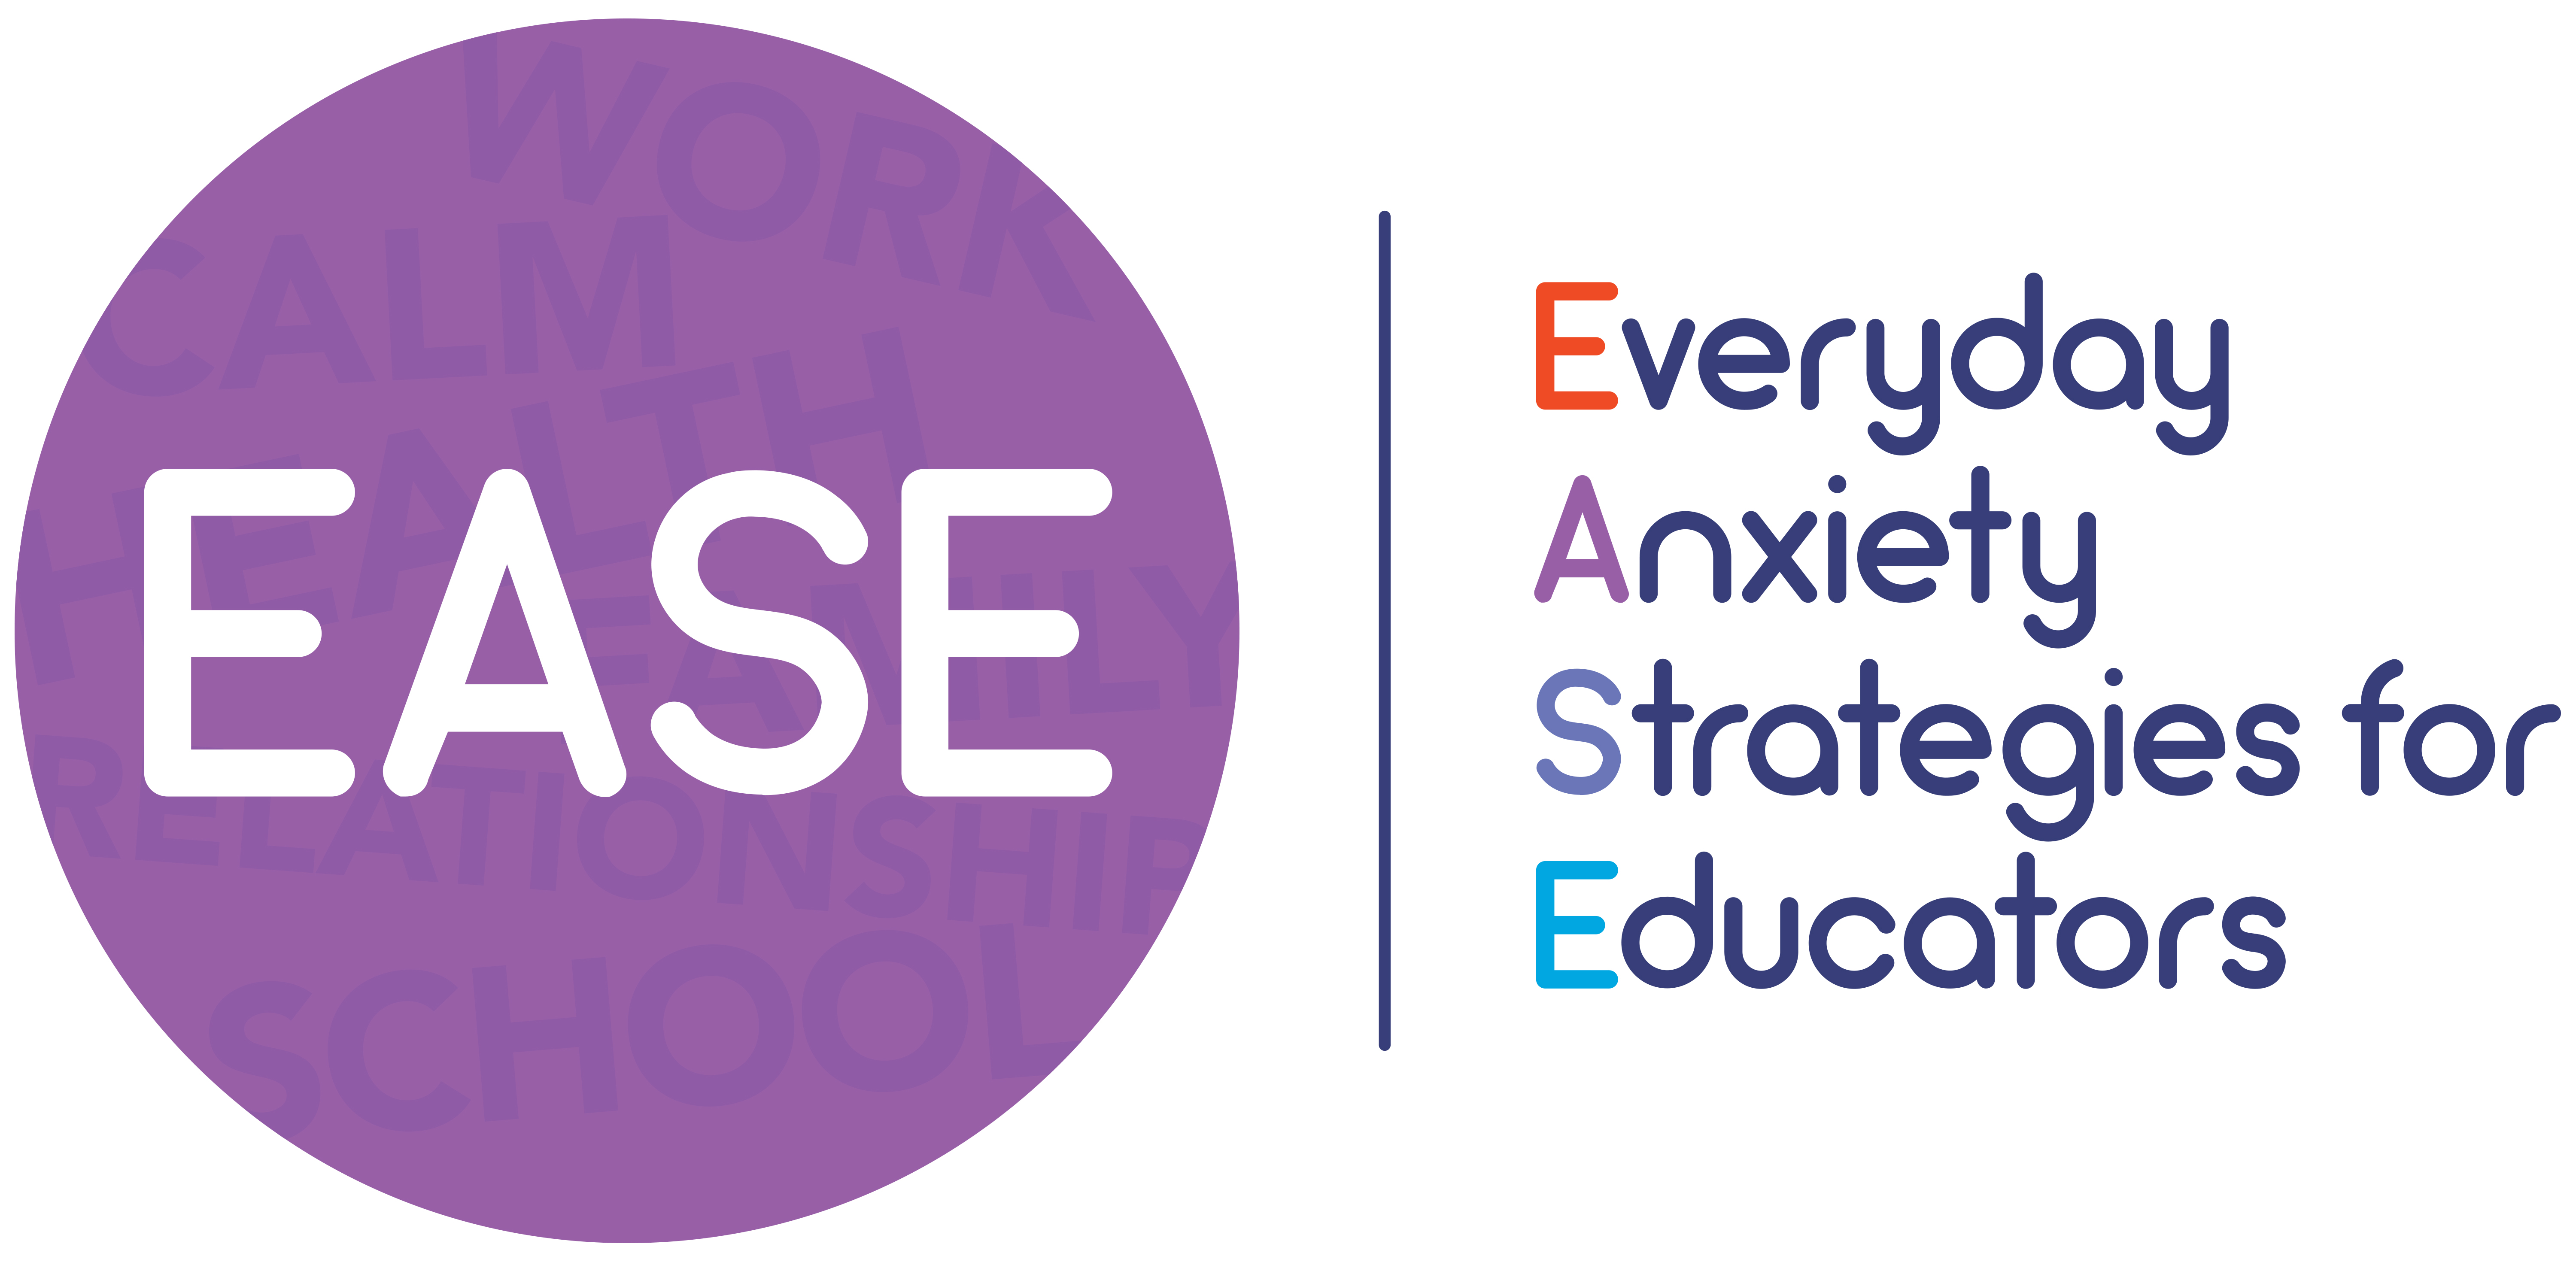 Everyday Anxiety Strategies for Educators (EASE)